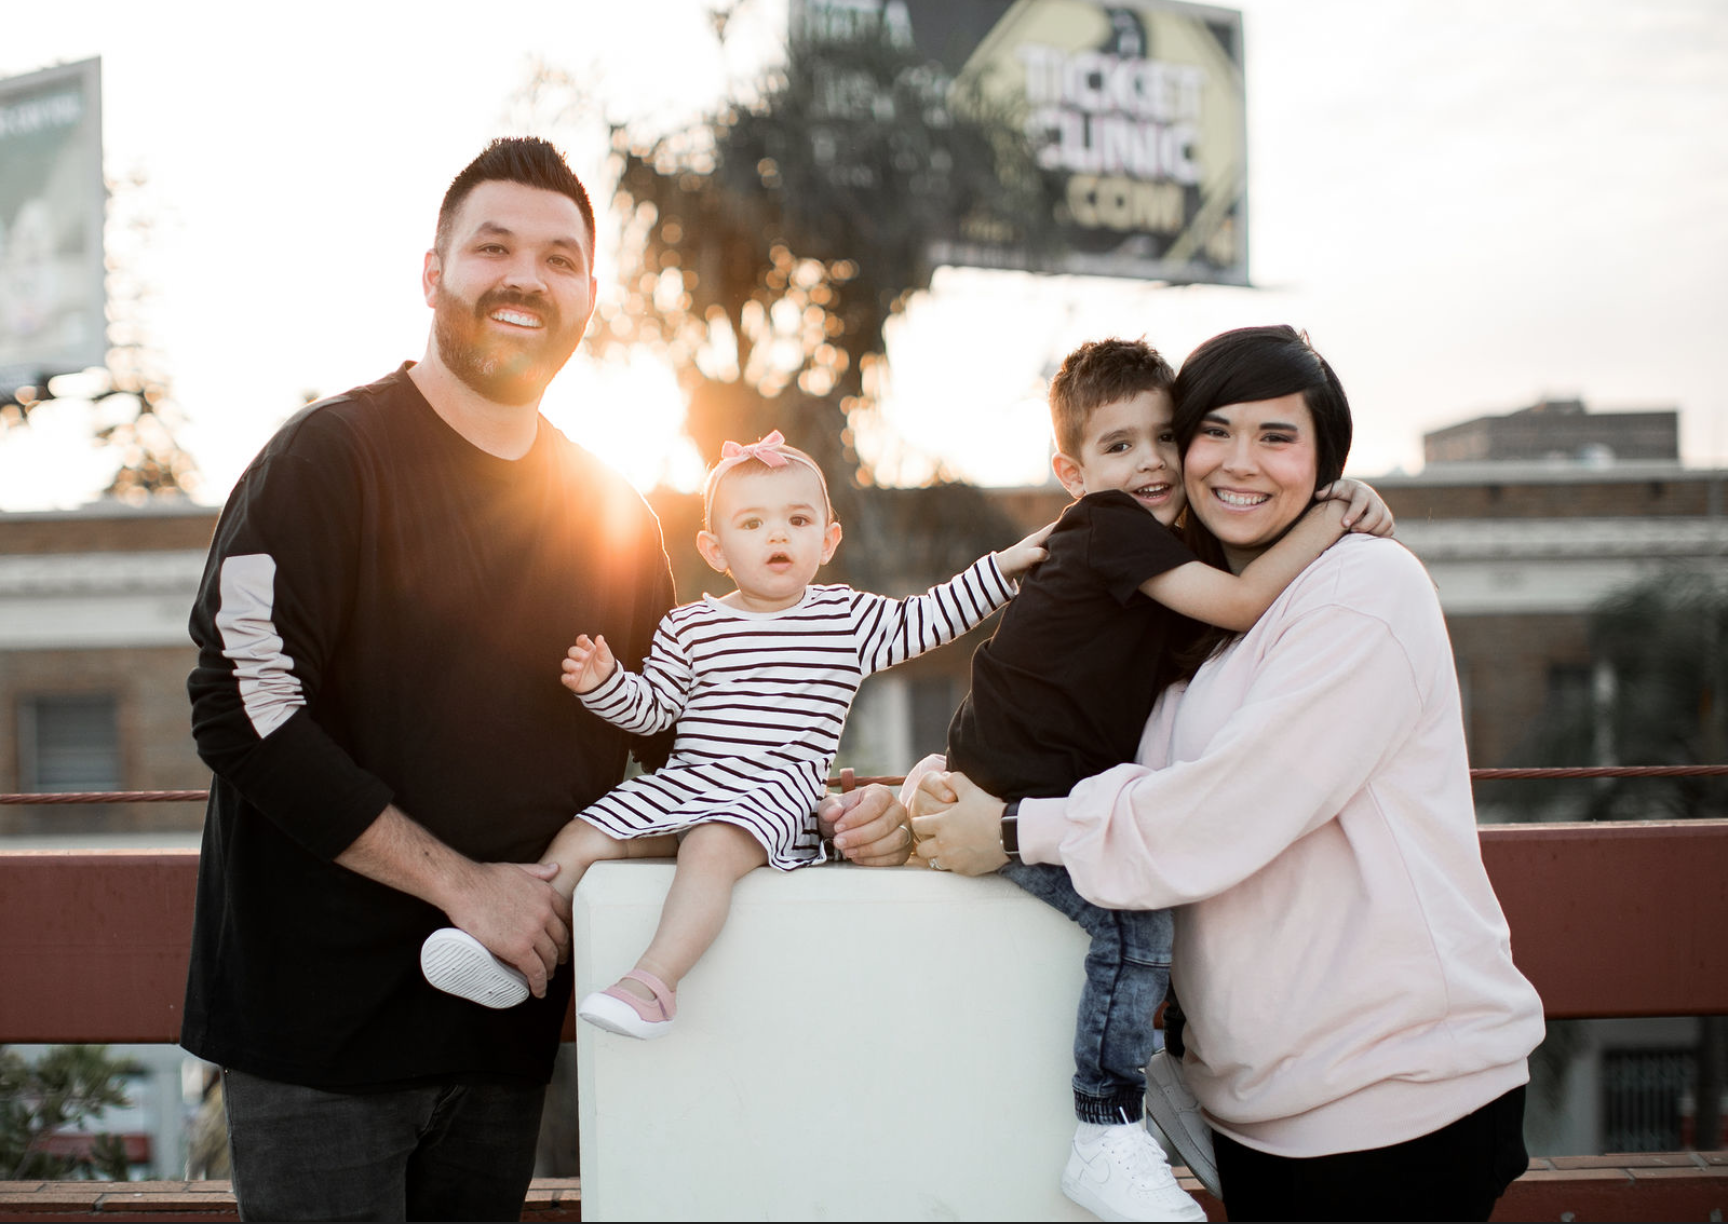 David and Leah Gaulton founded the Jesus Use Me Movement in 2014. They are Christ followers, worship leaders, and culture changers from Southern California. They serve on staff with Friends Church in Yorba Linda, and have 2 children Joseph and Sarah.